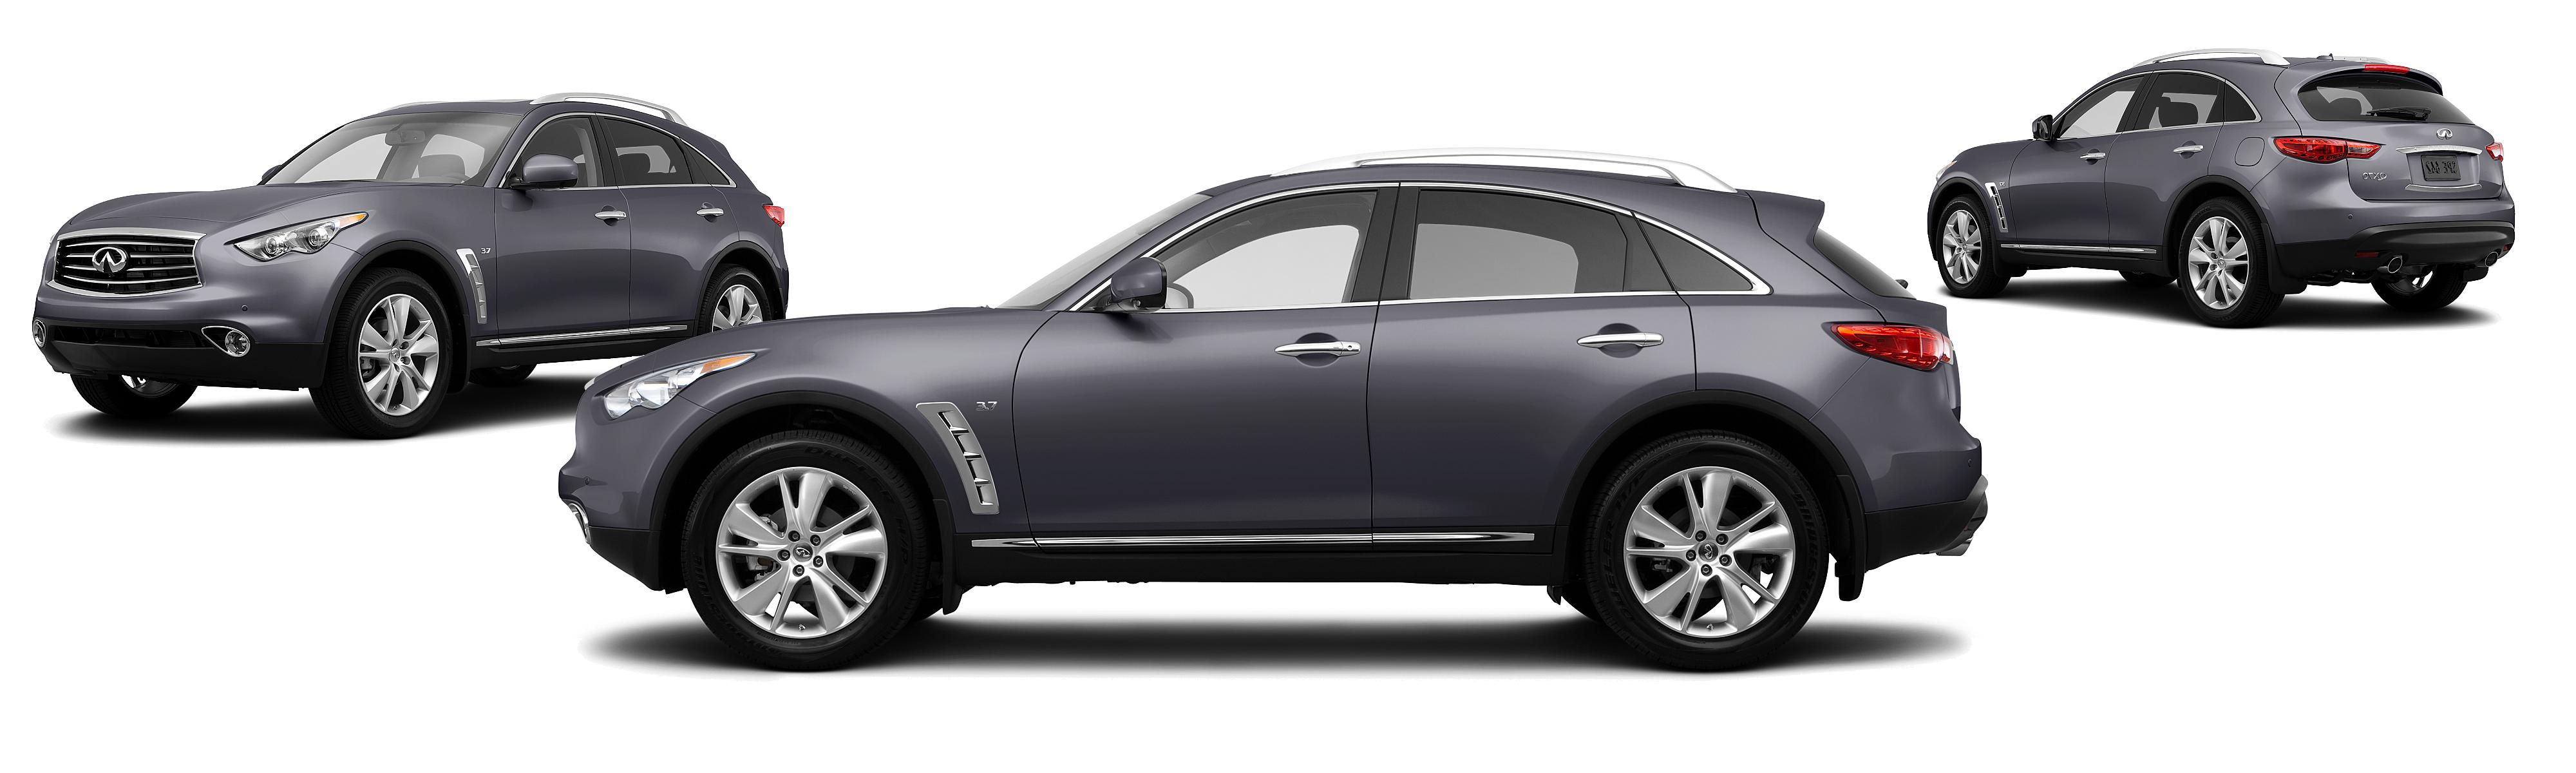 drive infiniti and come in together suv image harmony perfect family article hauling sunday luxury business infinity